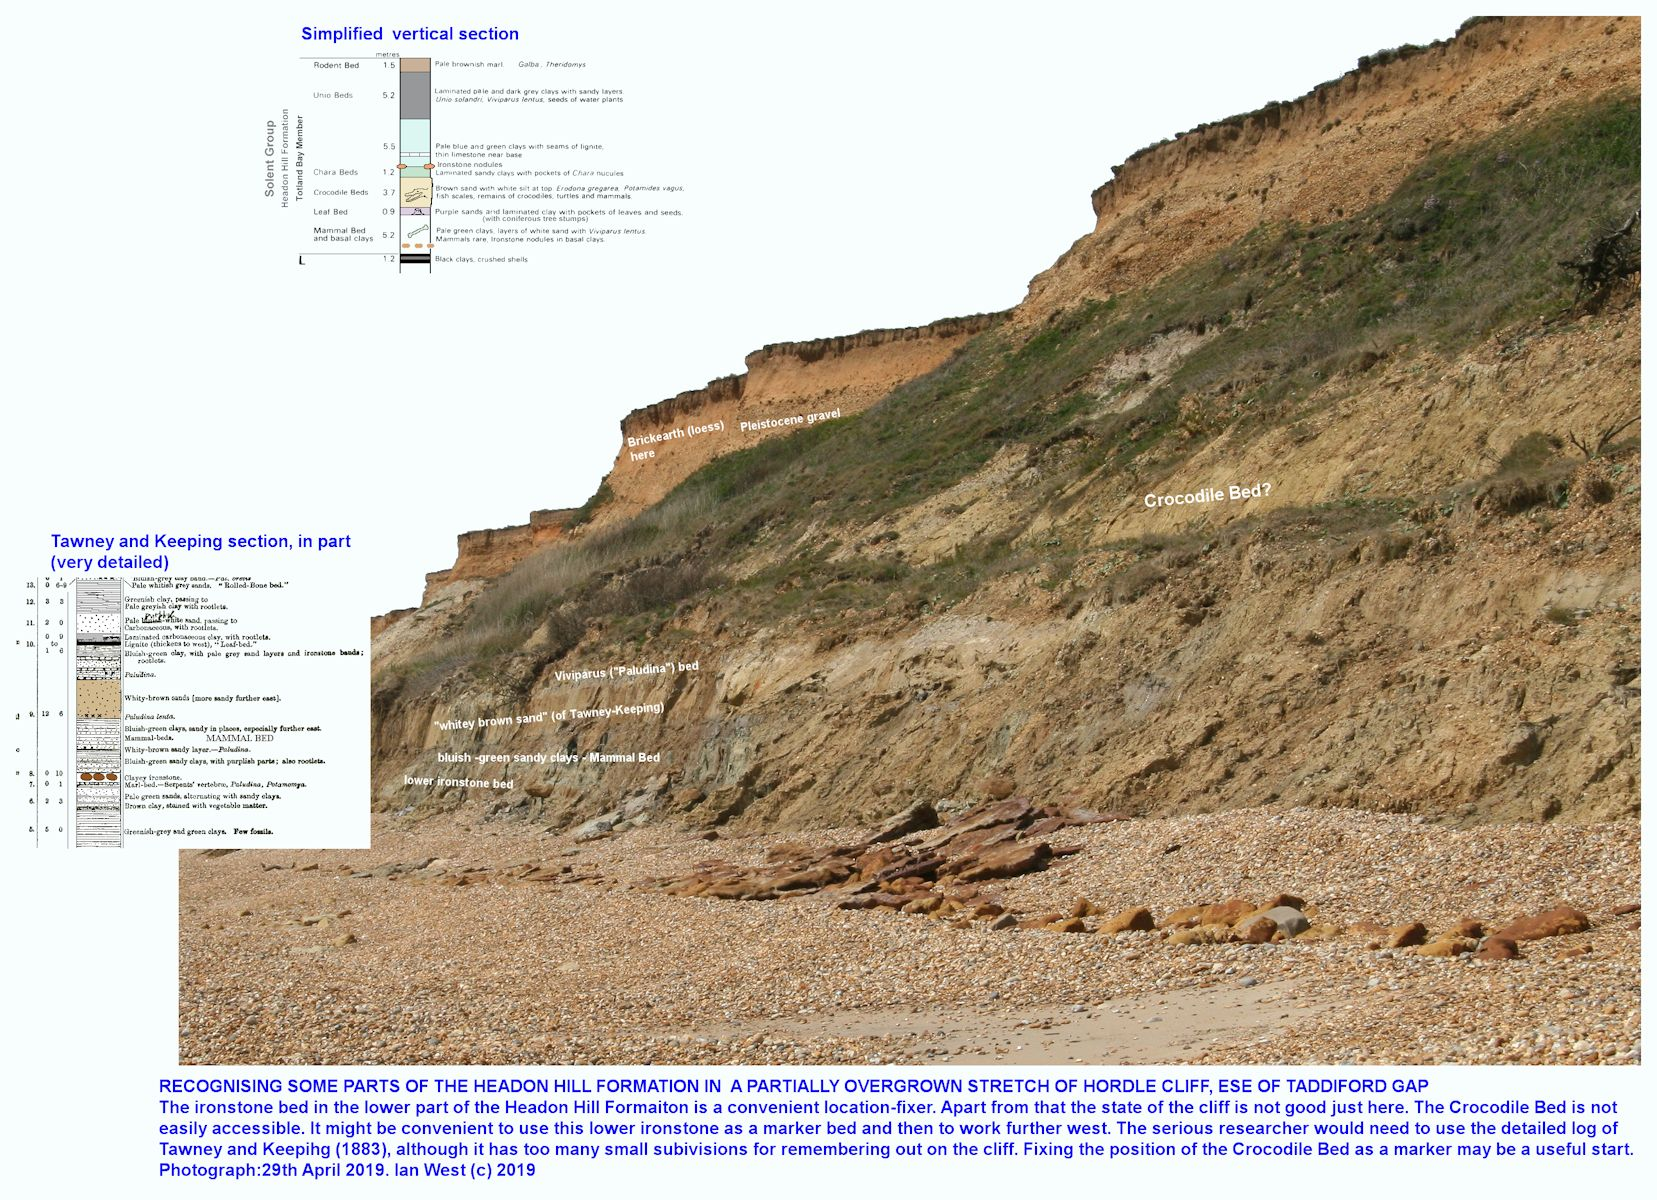 The sequence about the lower ironstone in the Headon Hill Formation, Hordle Cliff, with comparative details re the succession